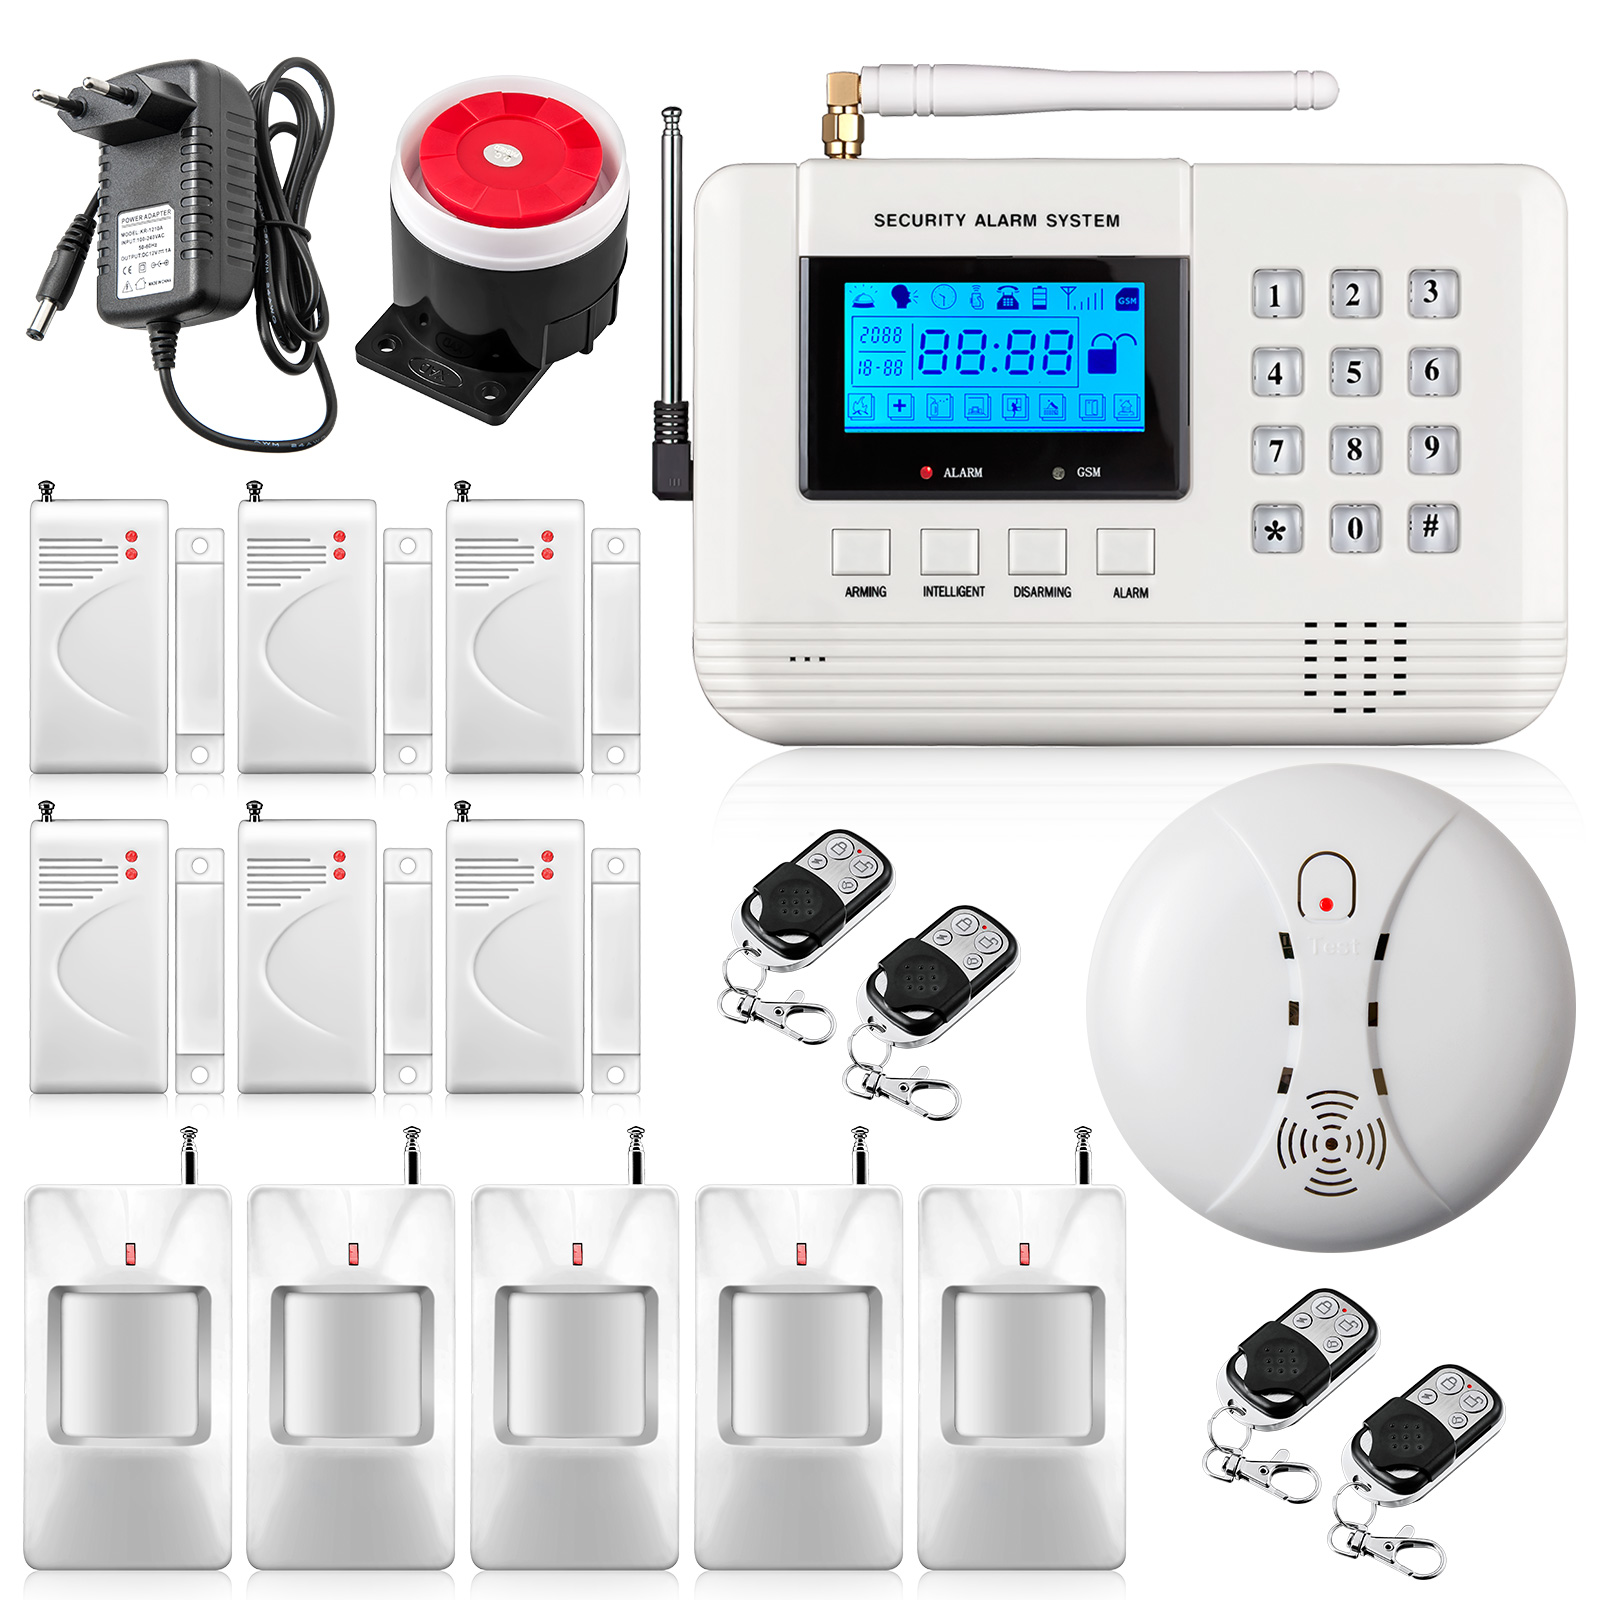 What are some retailers that offer PC phone dialer software?